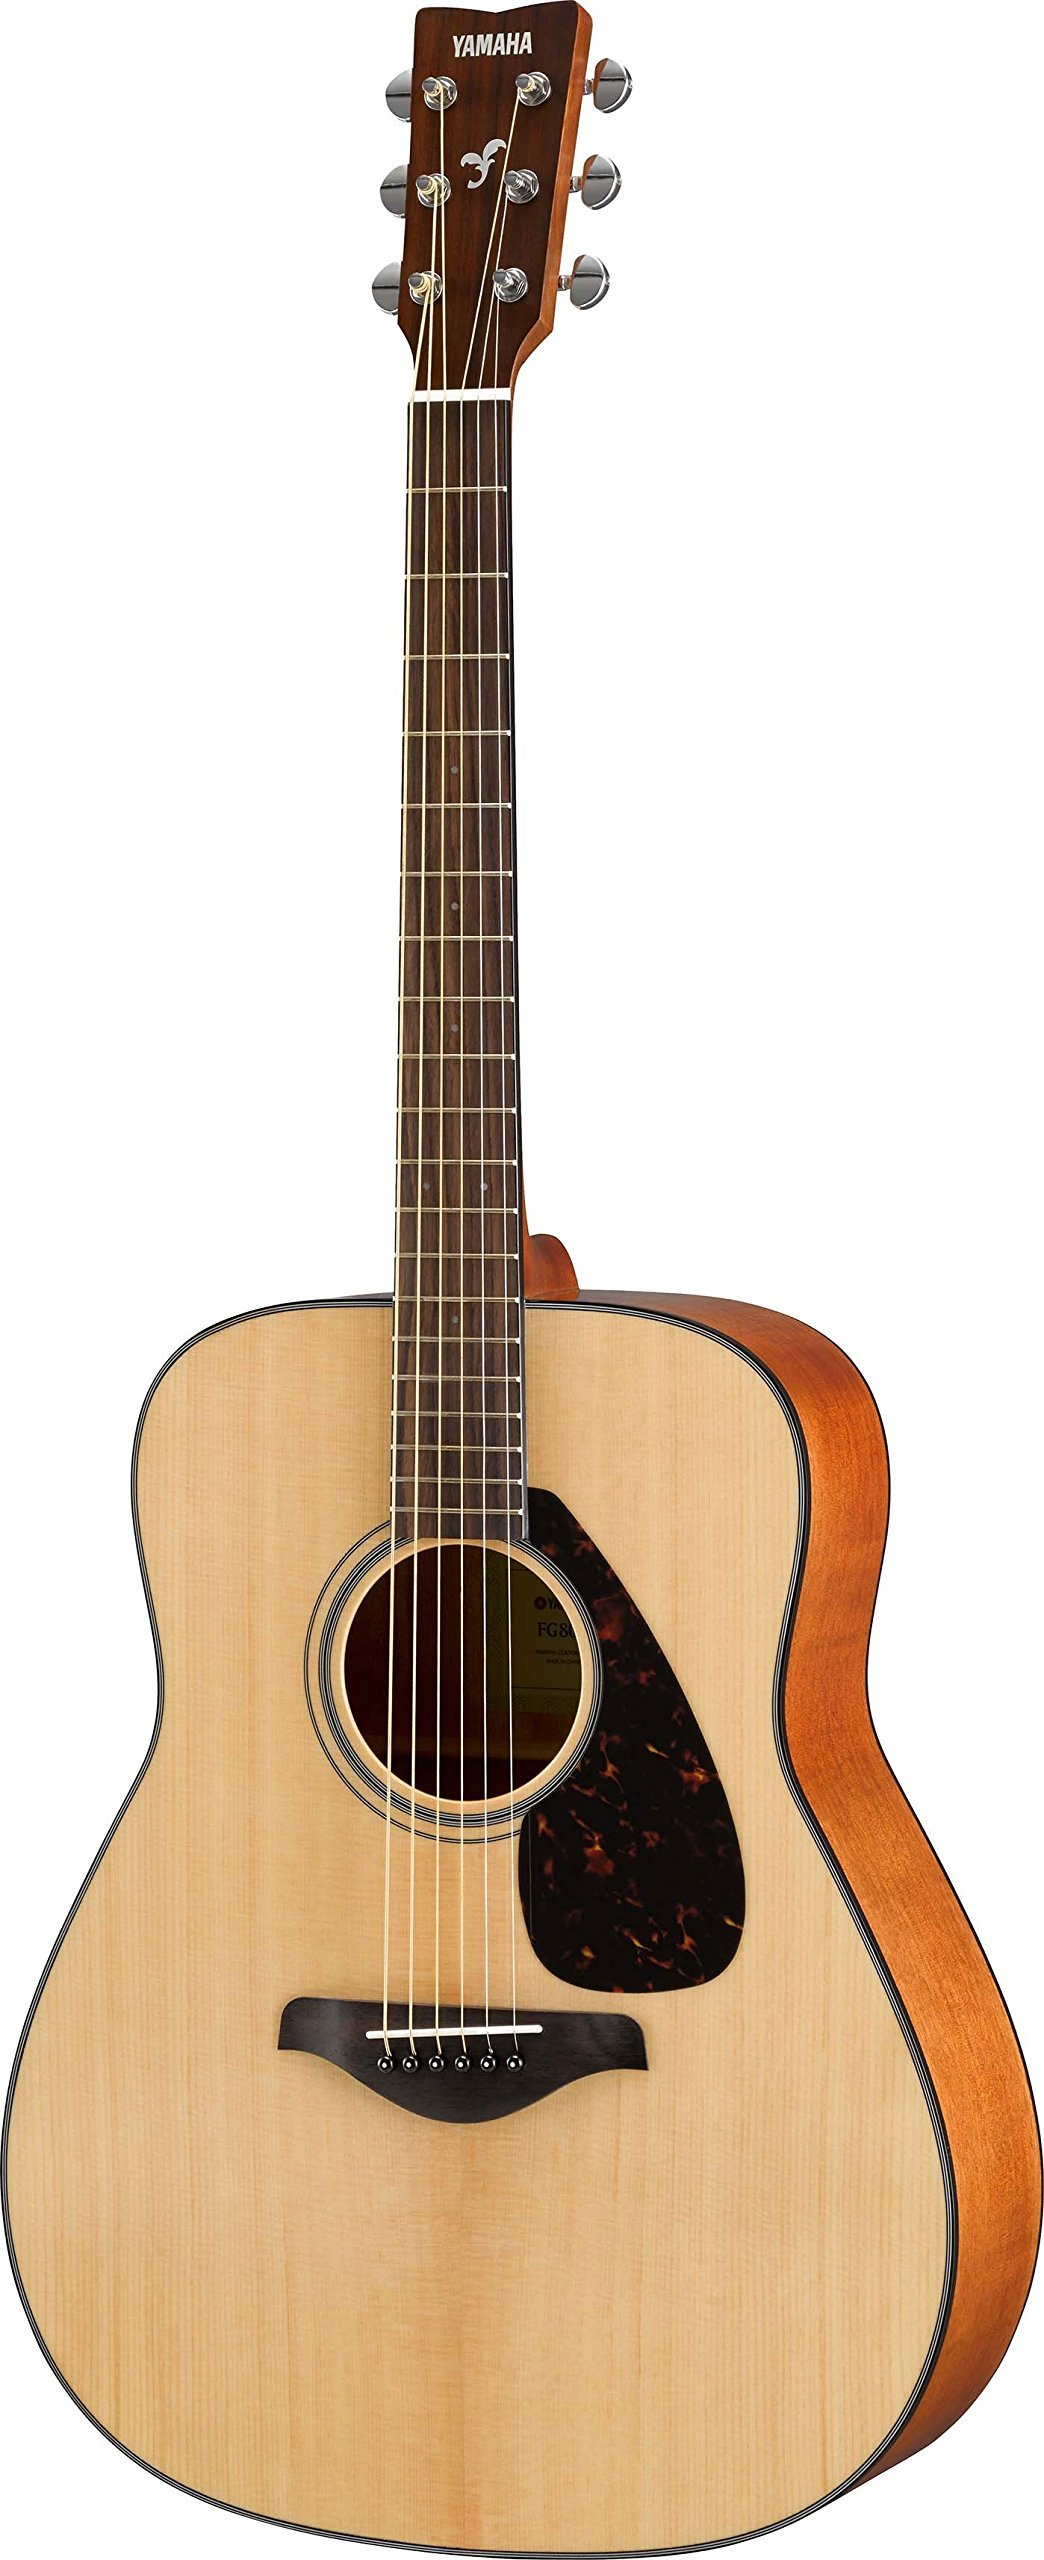 Yamaha FG800 Solid Top Acoustic Guitar by Yamaha (Image #2)